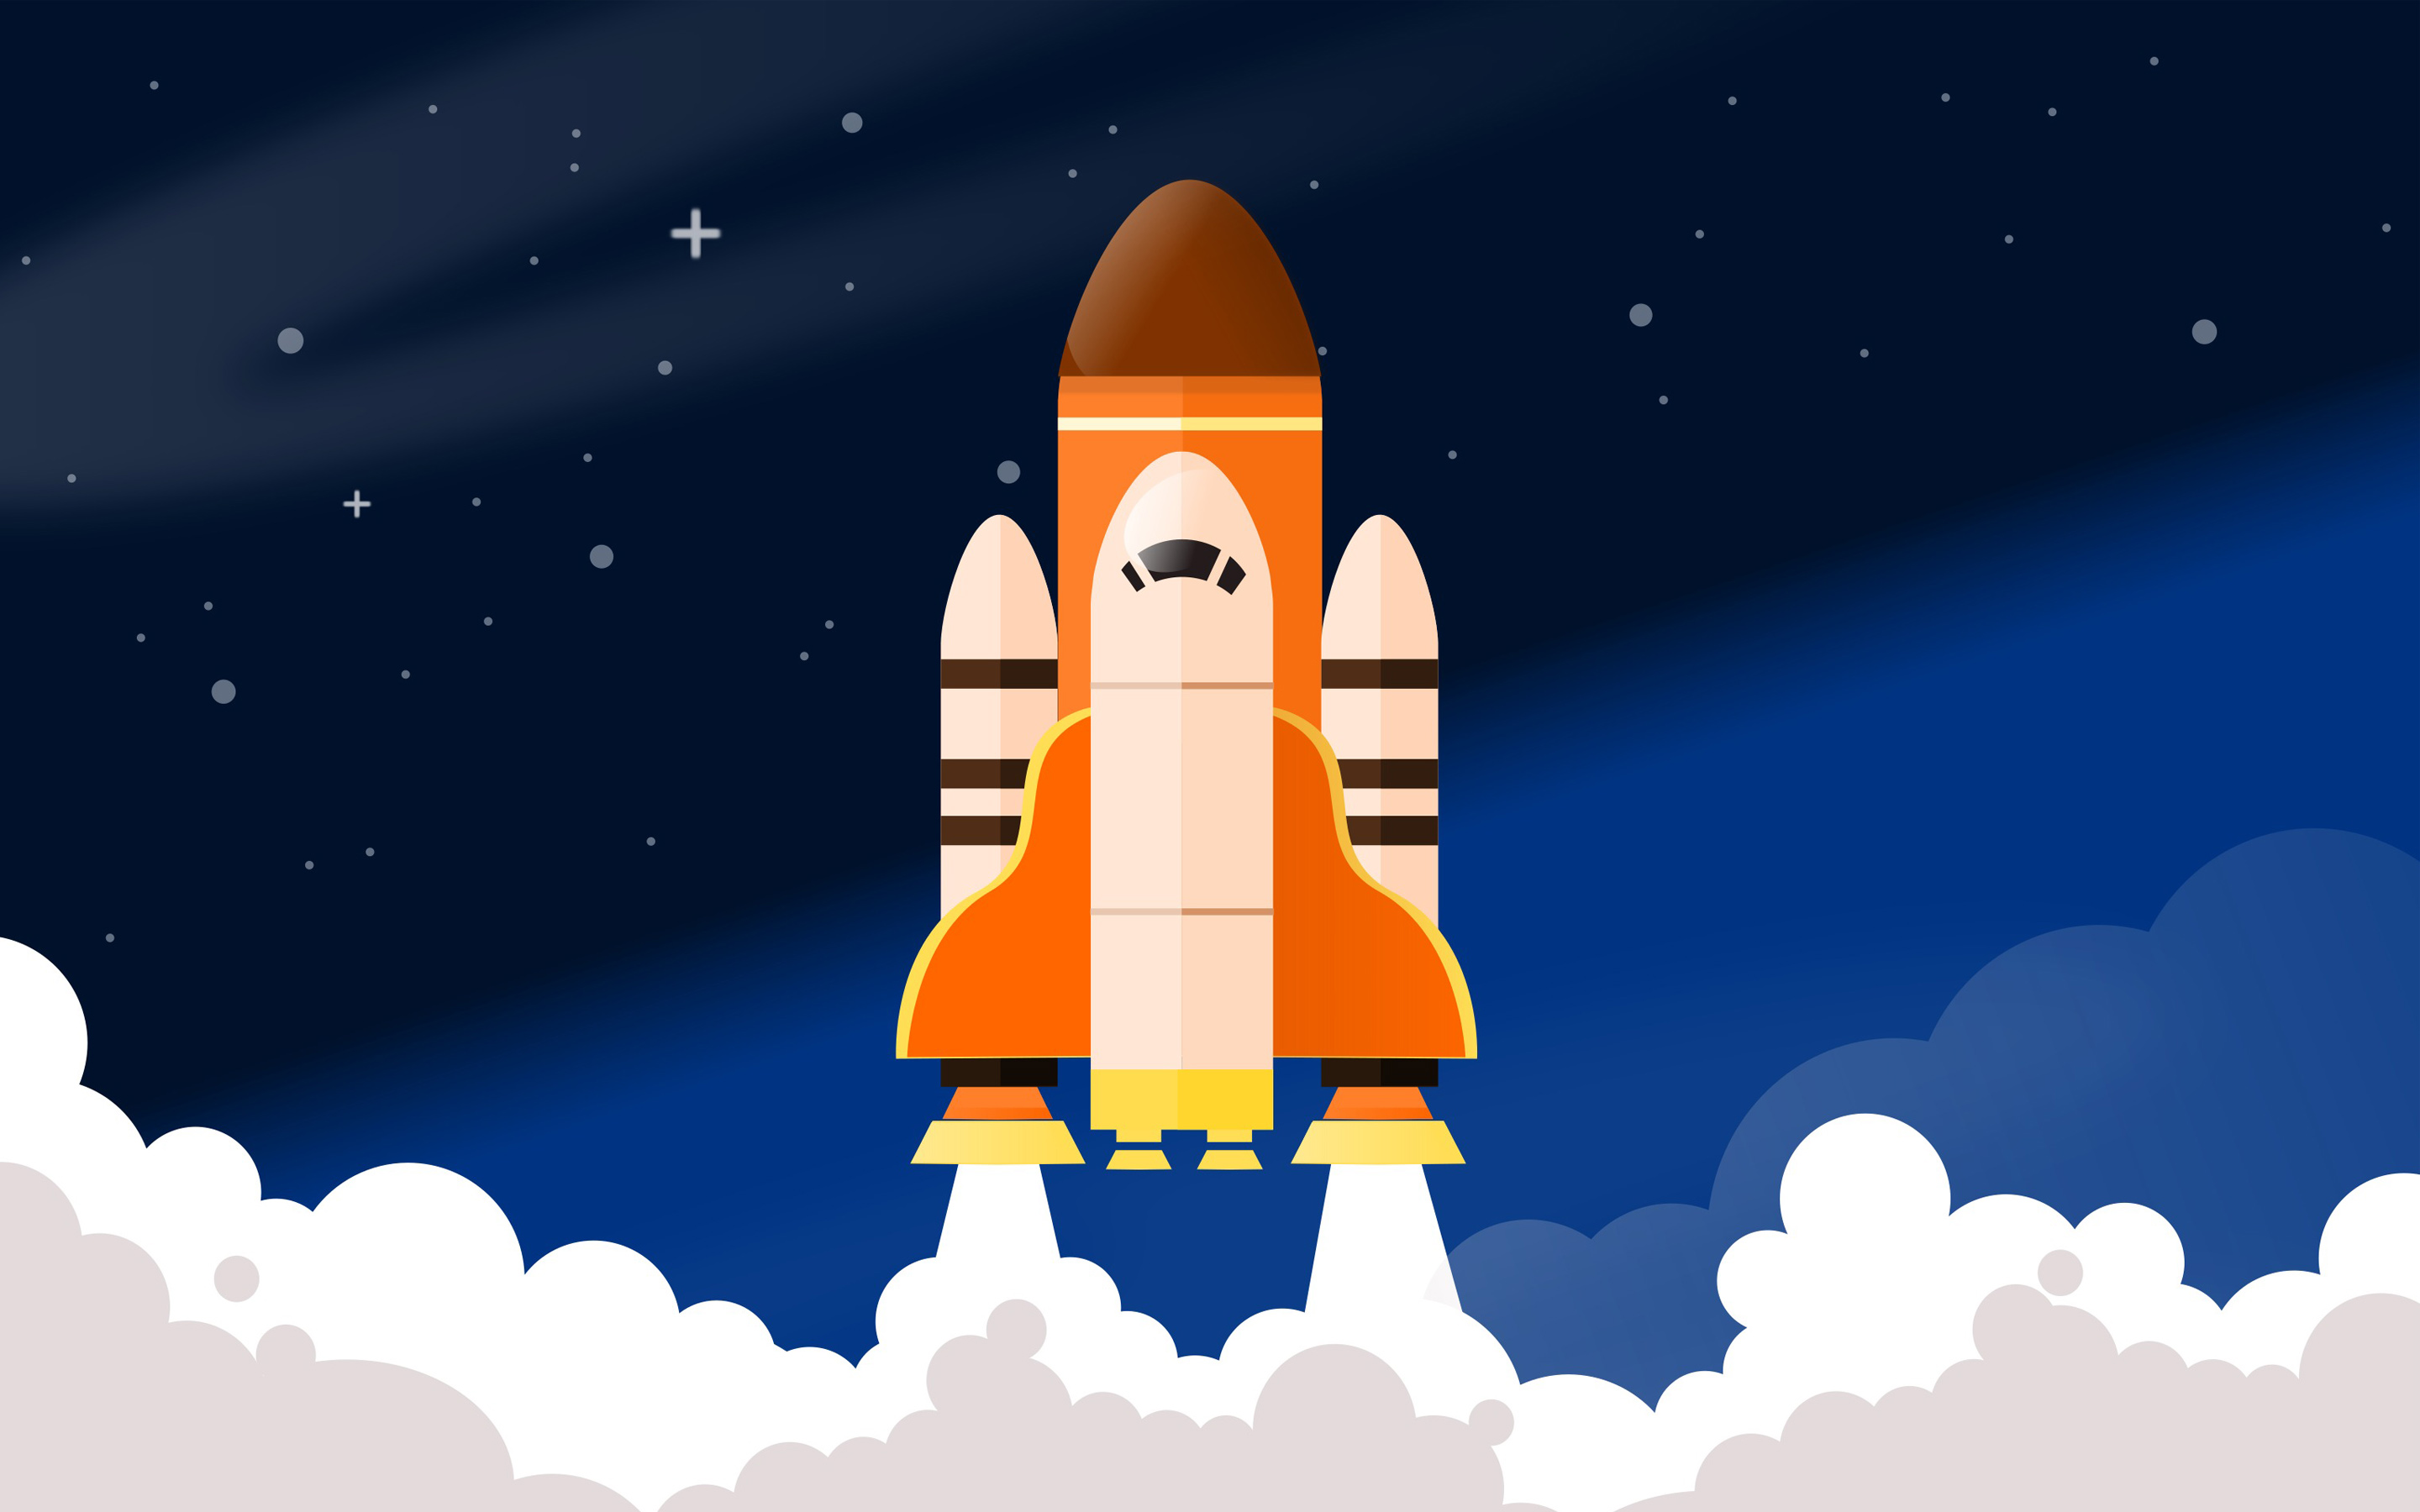 space rocket shuttle digital art wallpaper background 63426